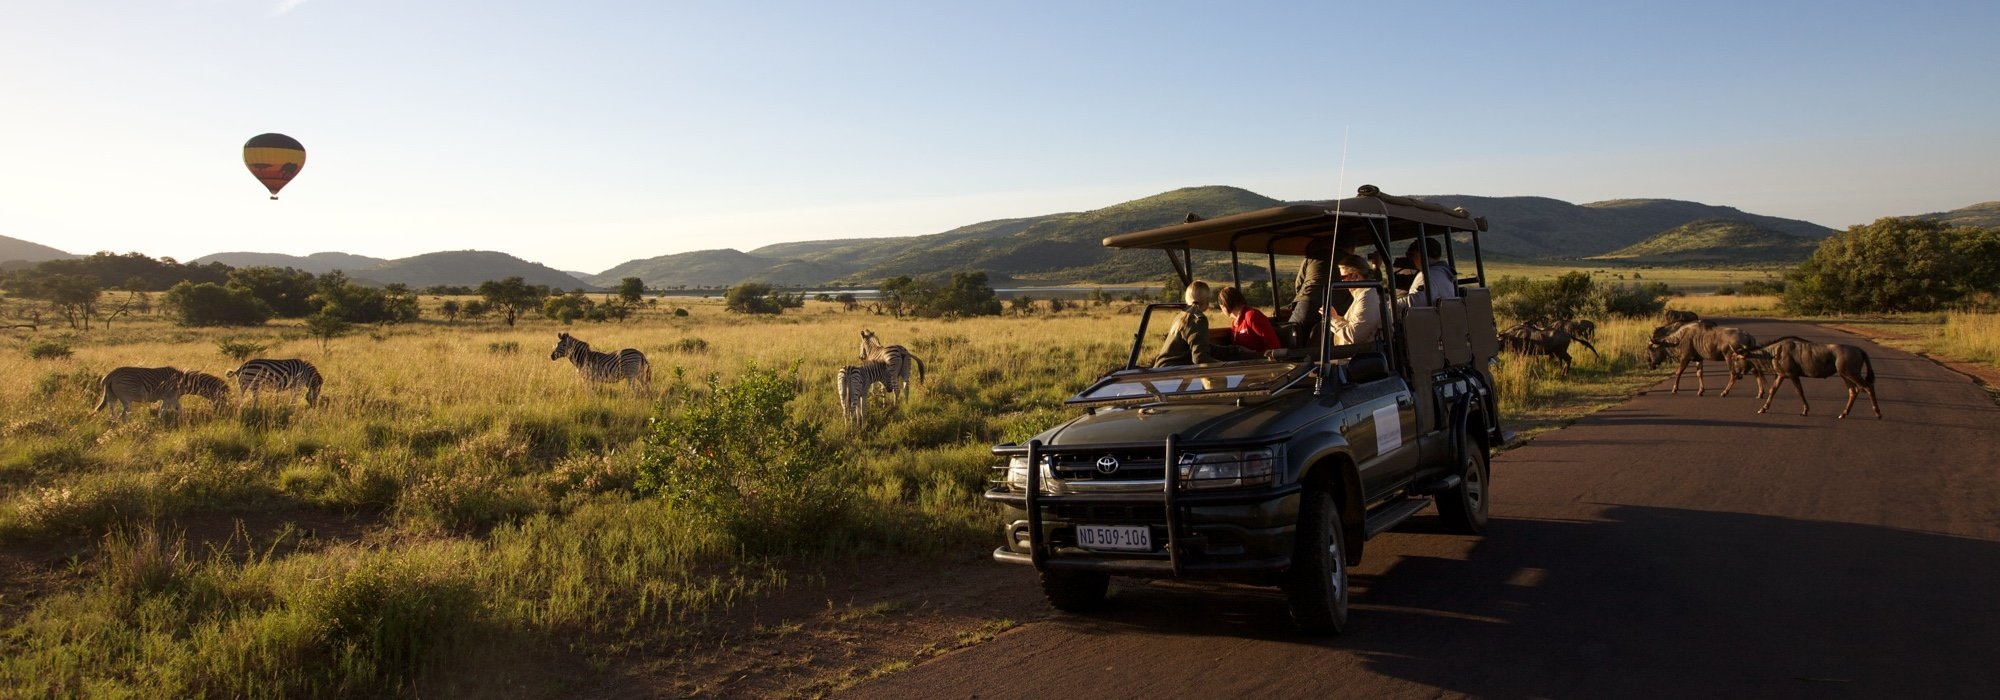 A safari at Pilanesberg